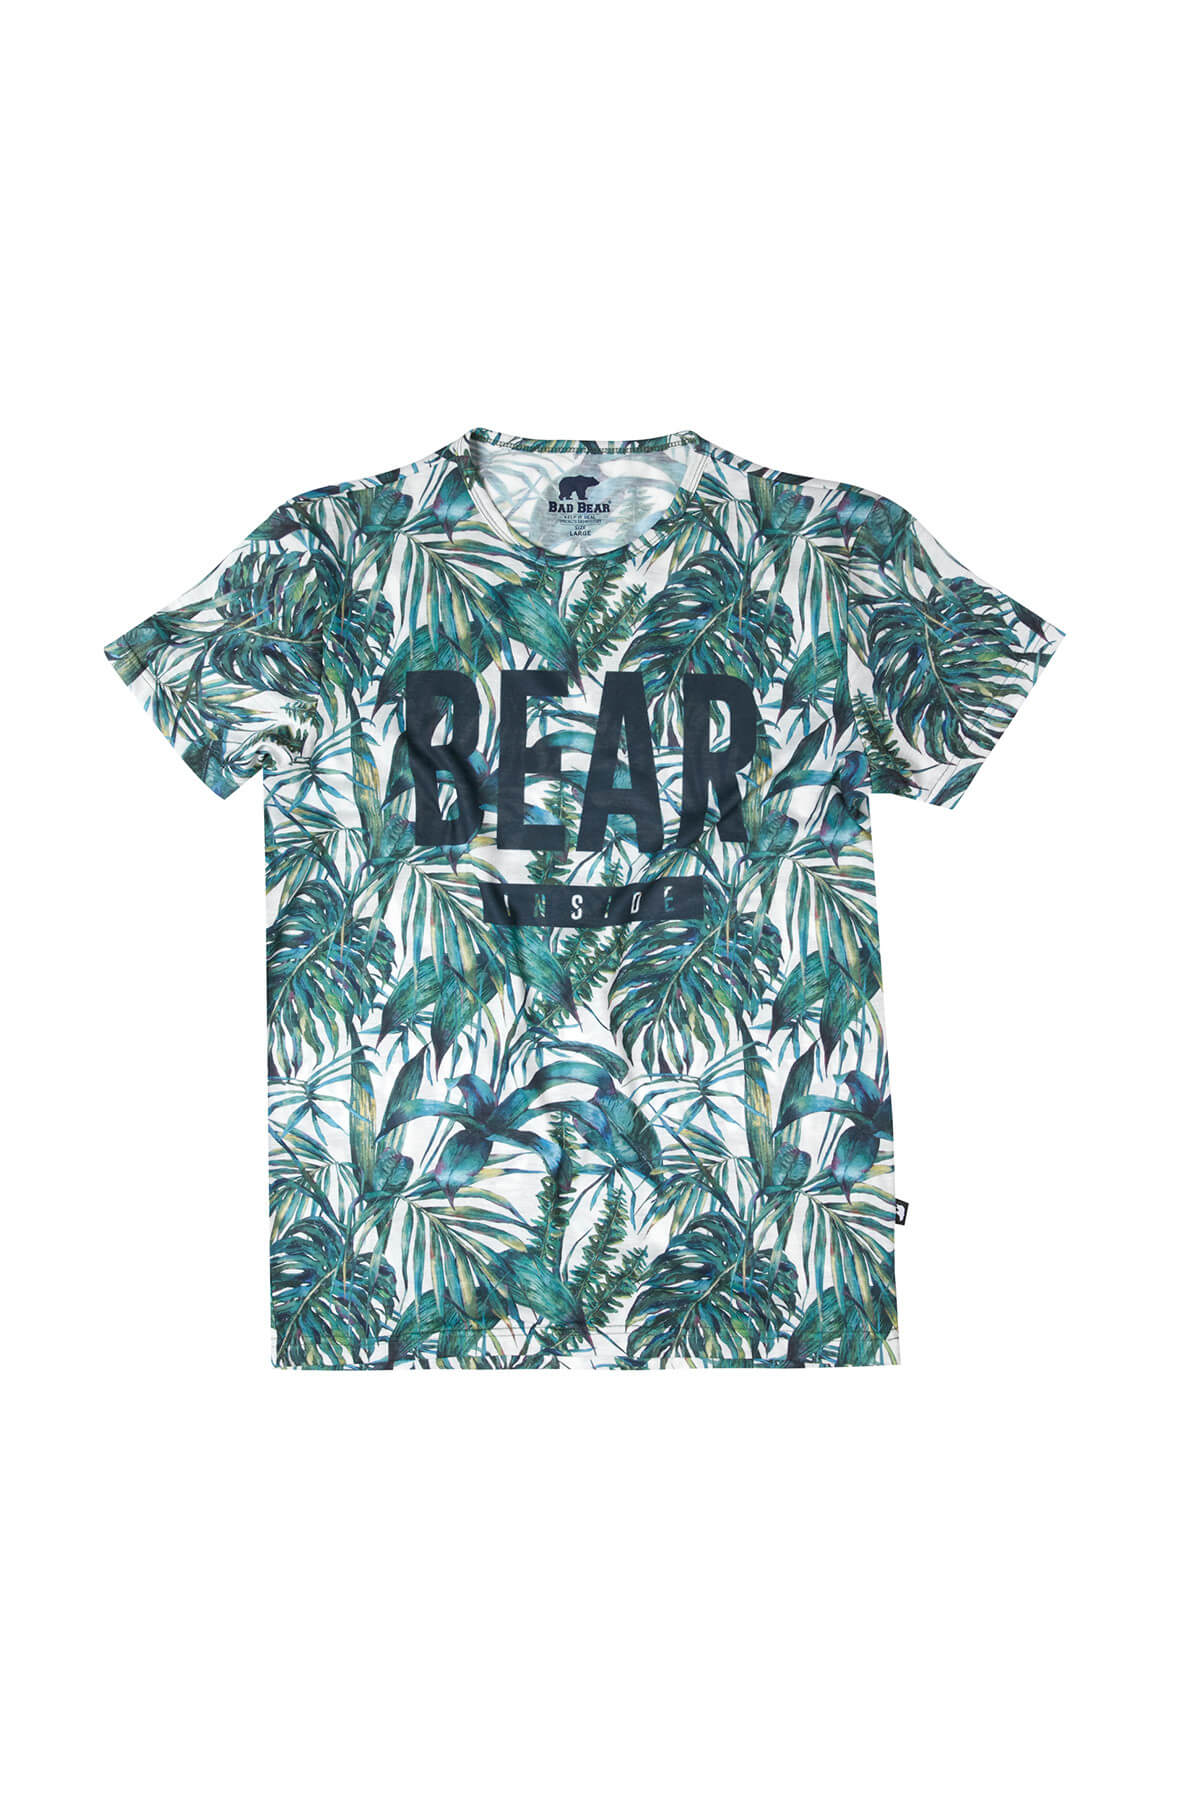 Bad Bear BEAR INSIDE OFF-WHITE 2